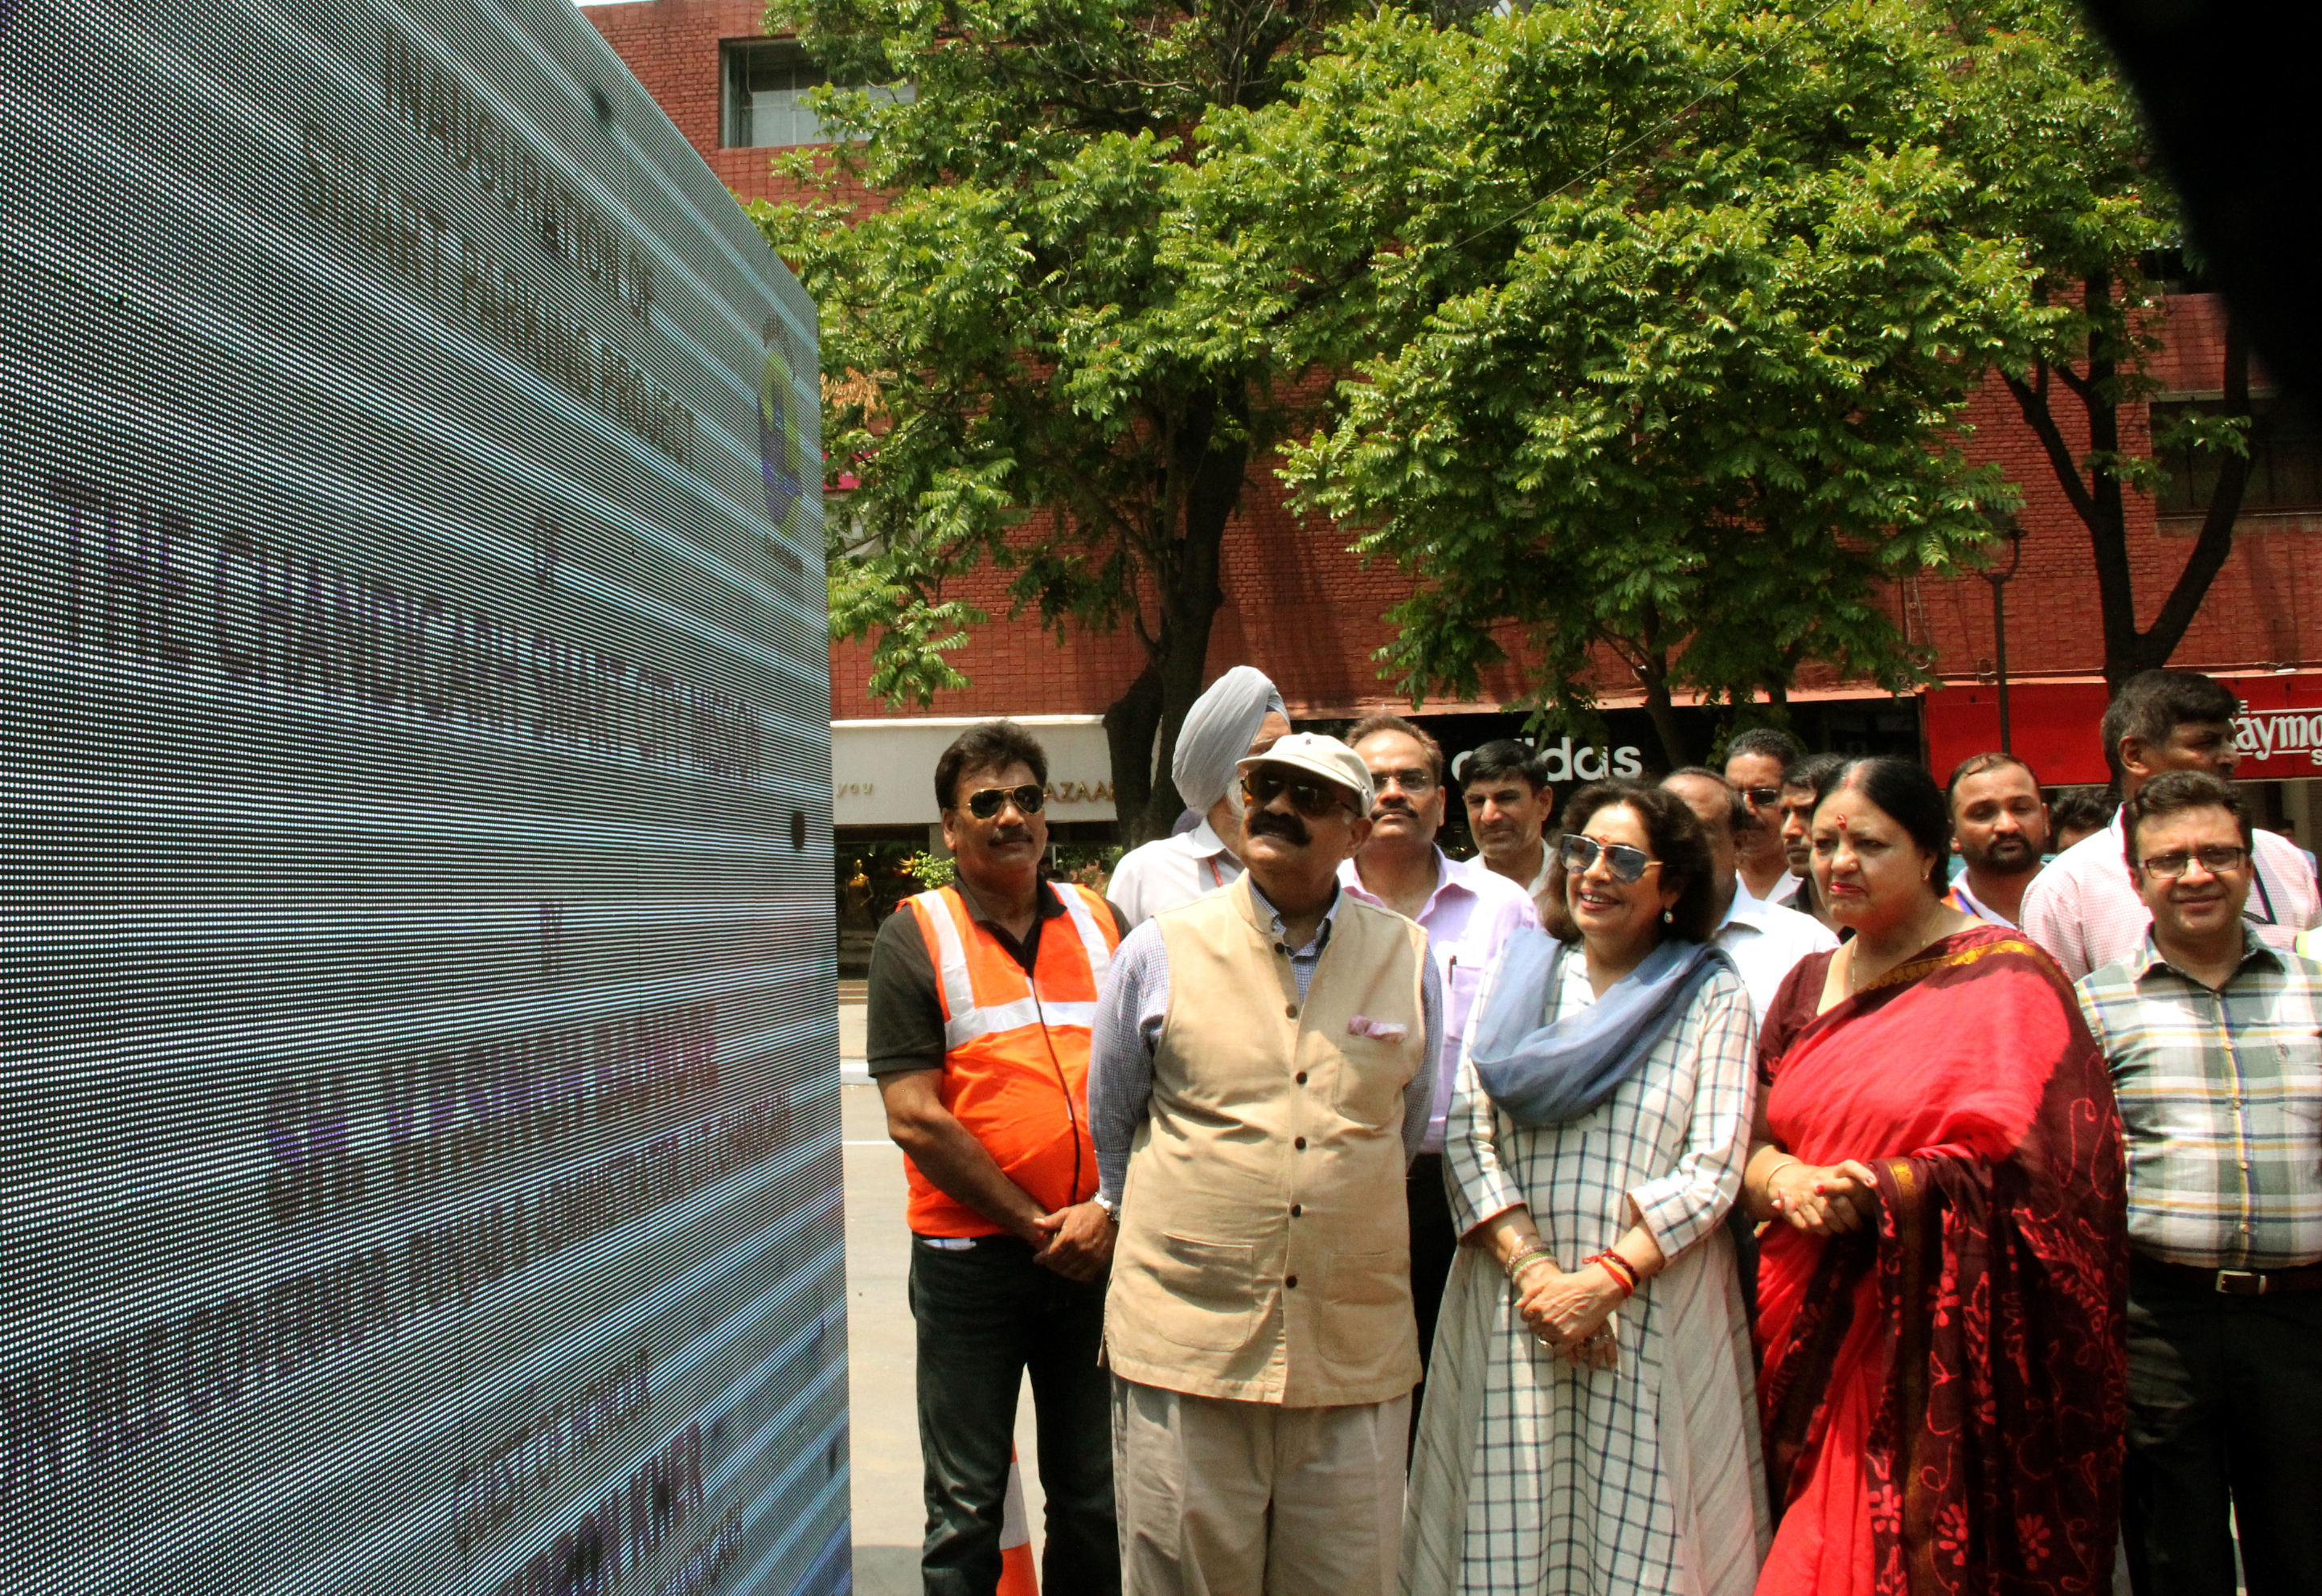 The Governor of Punjab and  Administrator, UT, Chandigarh Shri V.P. Singh Badnore alongwith Smt. Kirron Kher, Member of  Parliament Chandigarh,inaugurating the Smart Parking project at Sector 17 , Chandigarh on Sunday, June 25, 2017.